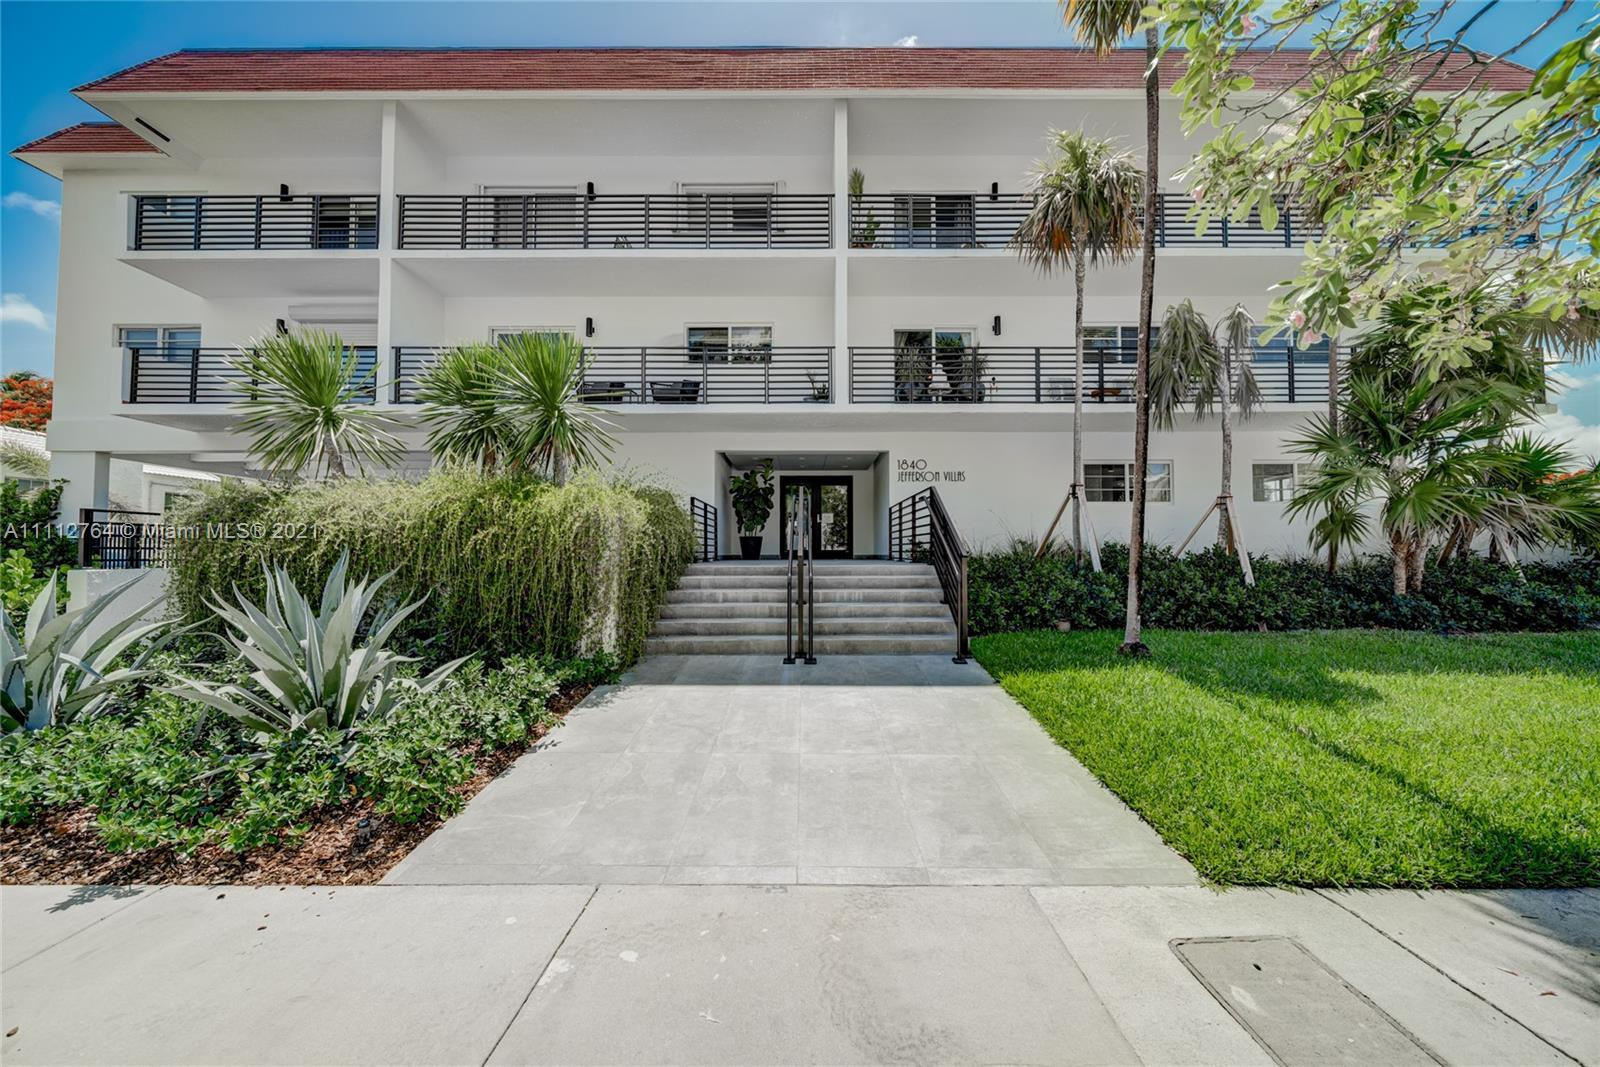 UNIT IS PERFECTLY LOCATED IN JEFFERSON AVE. WALKING DISTANCE TO THE BEACH, LINCOLN ROAD, SUPERMARKET